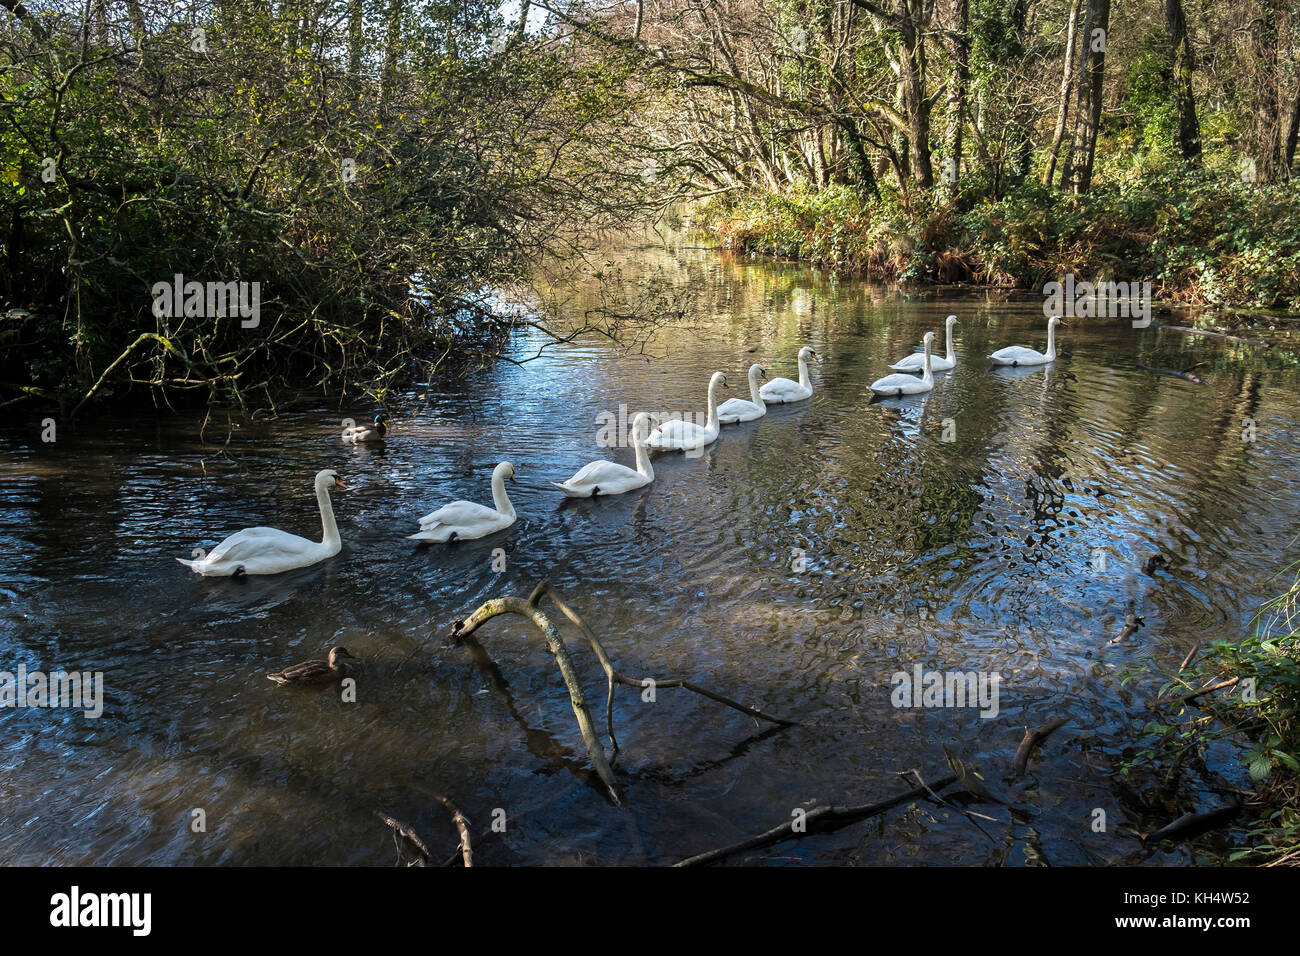 Swans on a lake in Tehidy Country Park Cornwall UK. - Stock Image